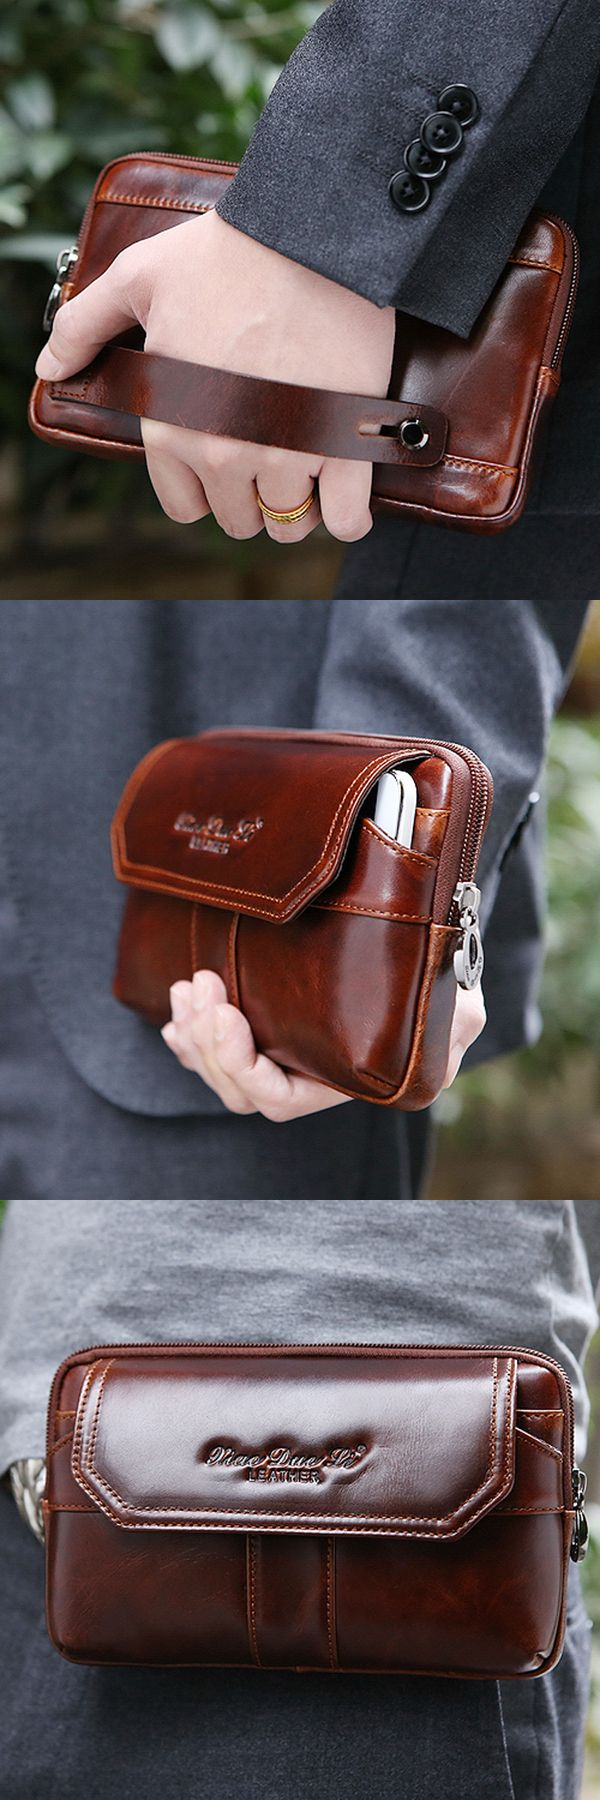 US$34.99 + Free shipping. Men Clutch Bag, Genuine Leather Men Clutch Bag, Belt Men Bag, Waist Bag, Phone Bag. Material: Genuine Leather. Excellent Design with Dual Use.